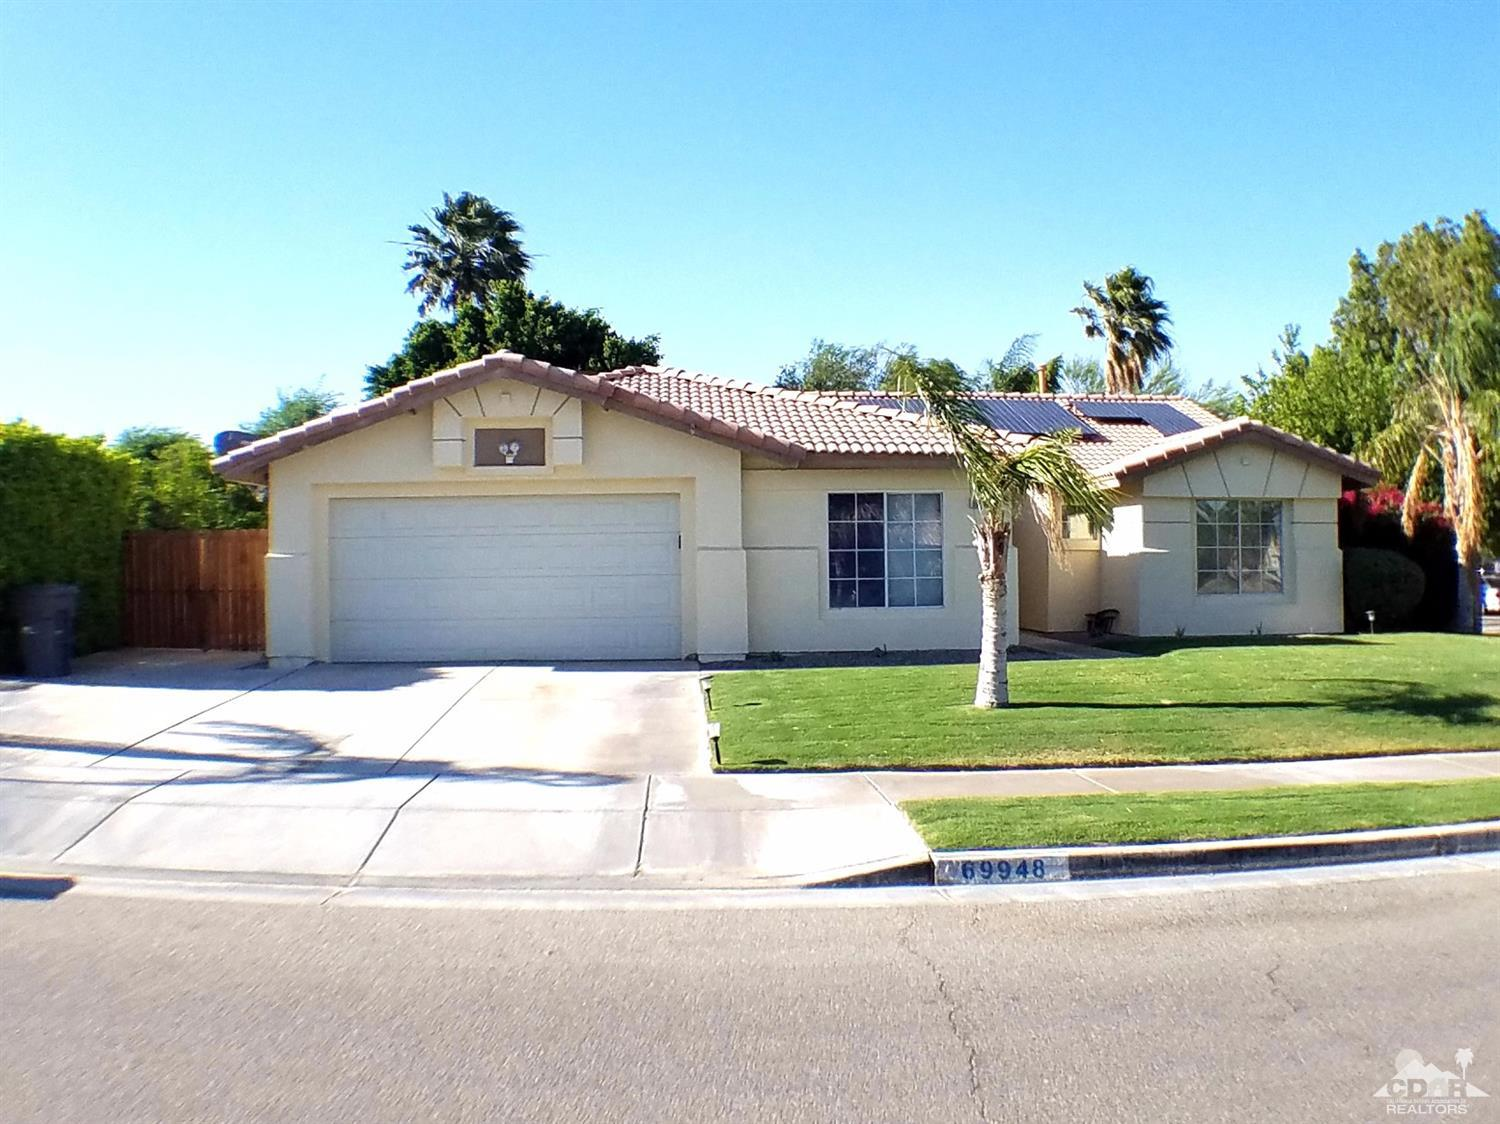 69948 Wakefield Road, Cathedral City, CA 92234